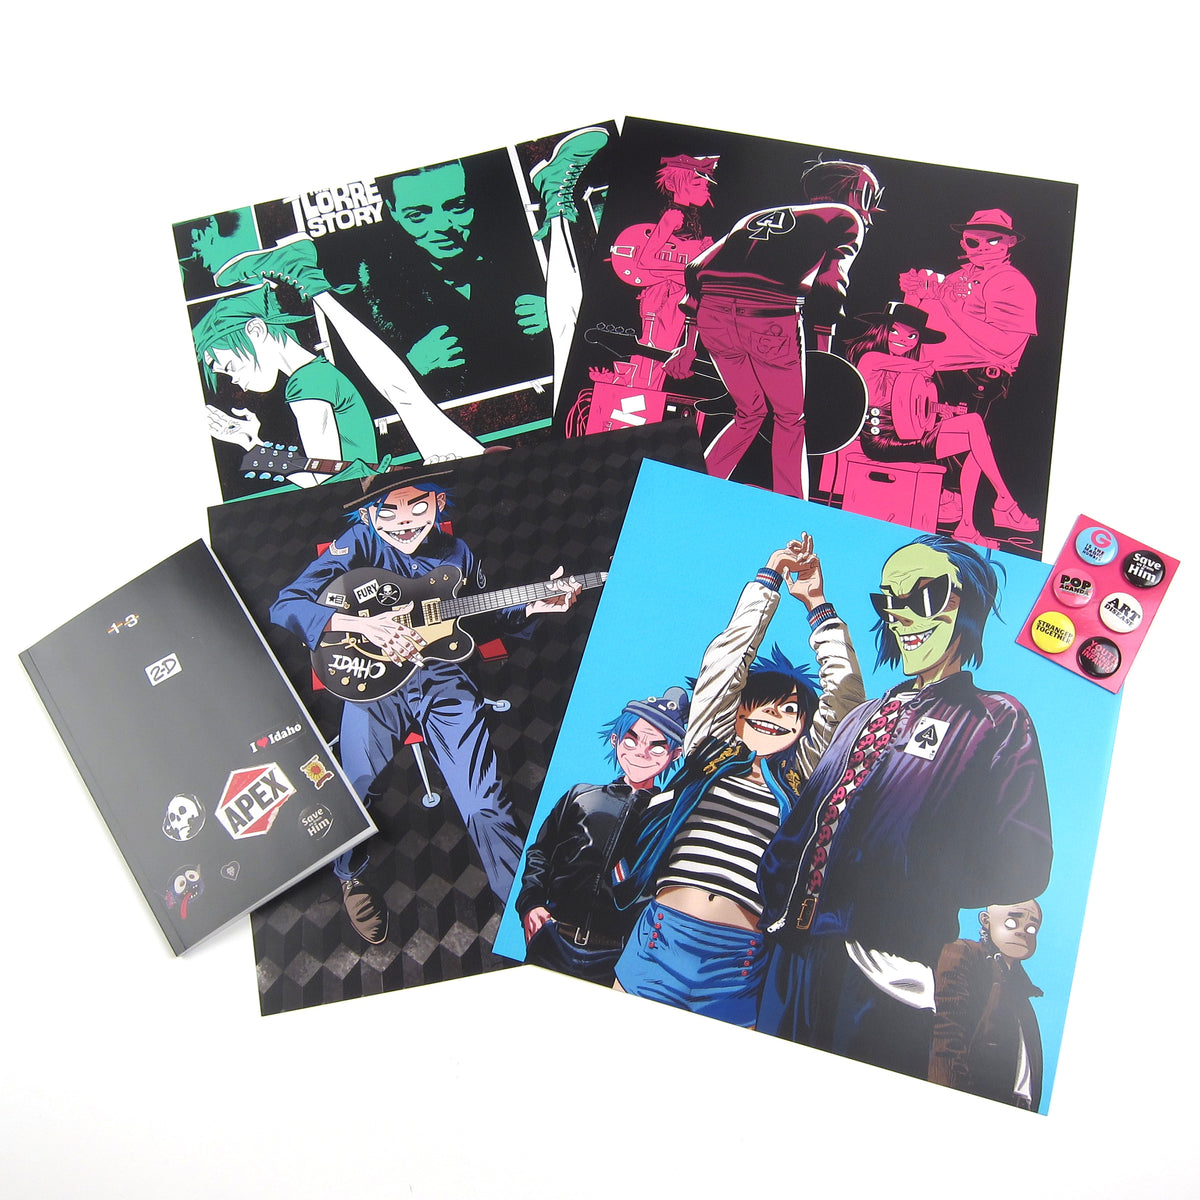 Gorillaz: The Now Now (180g, Colored Vinyl) Vinyl LP Boxset